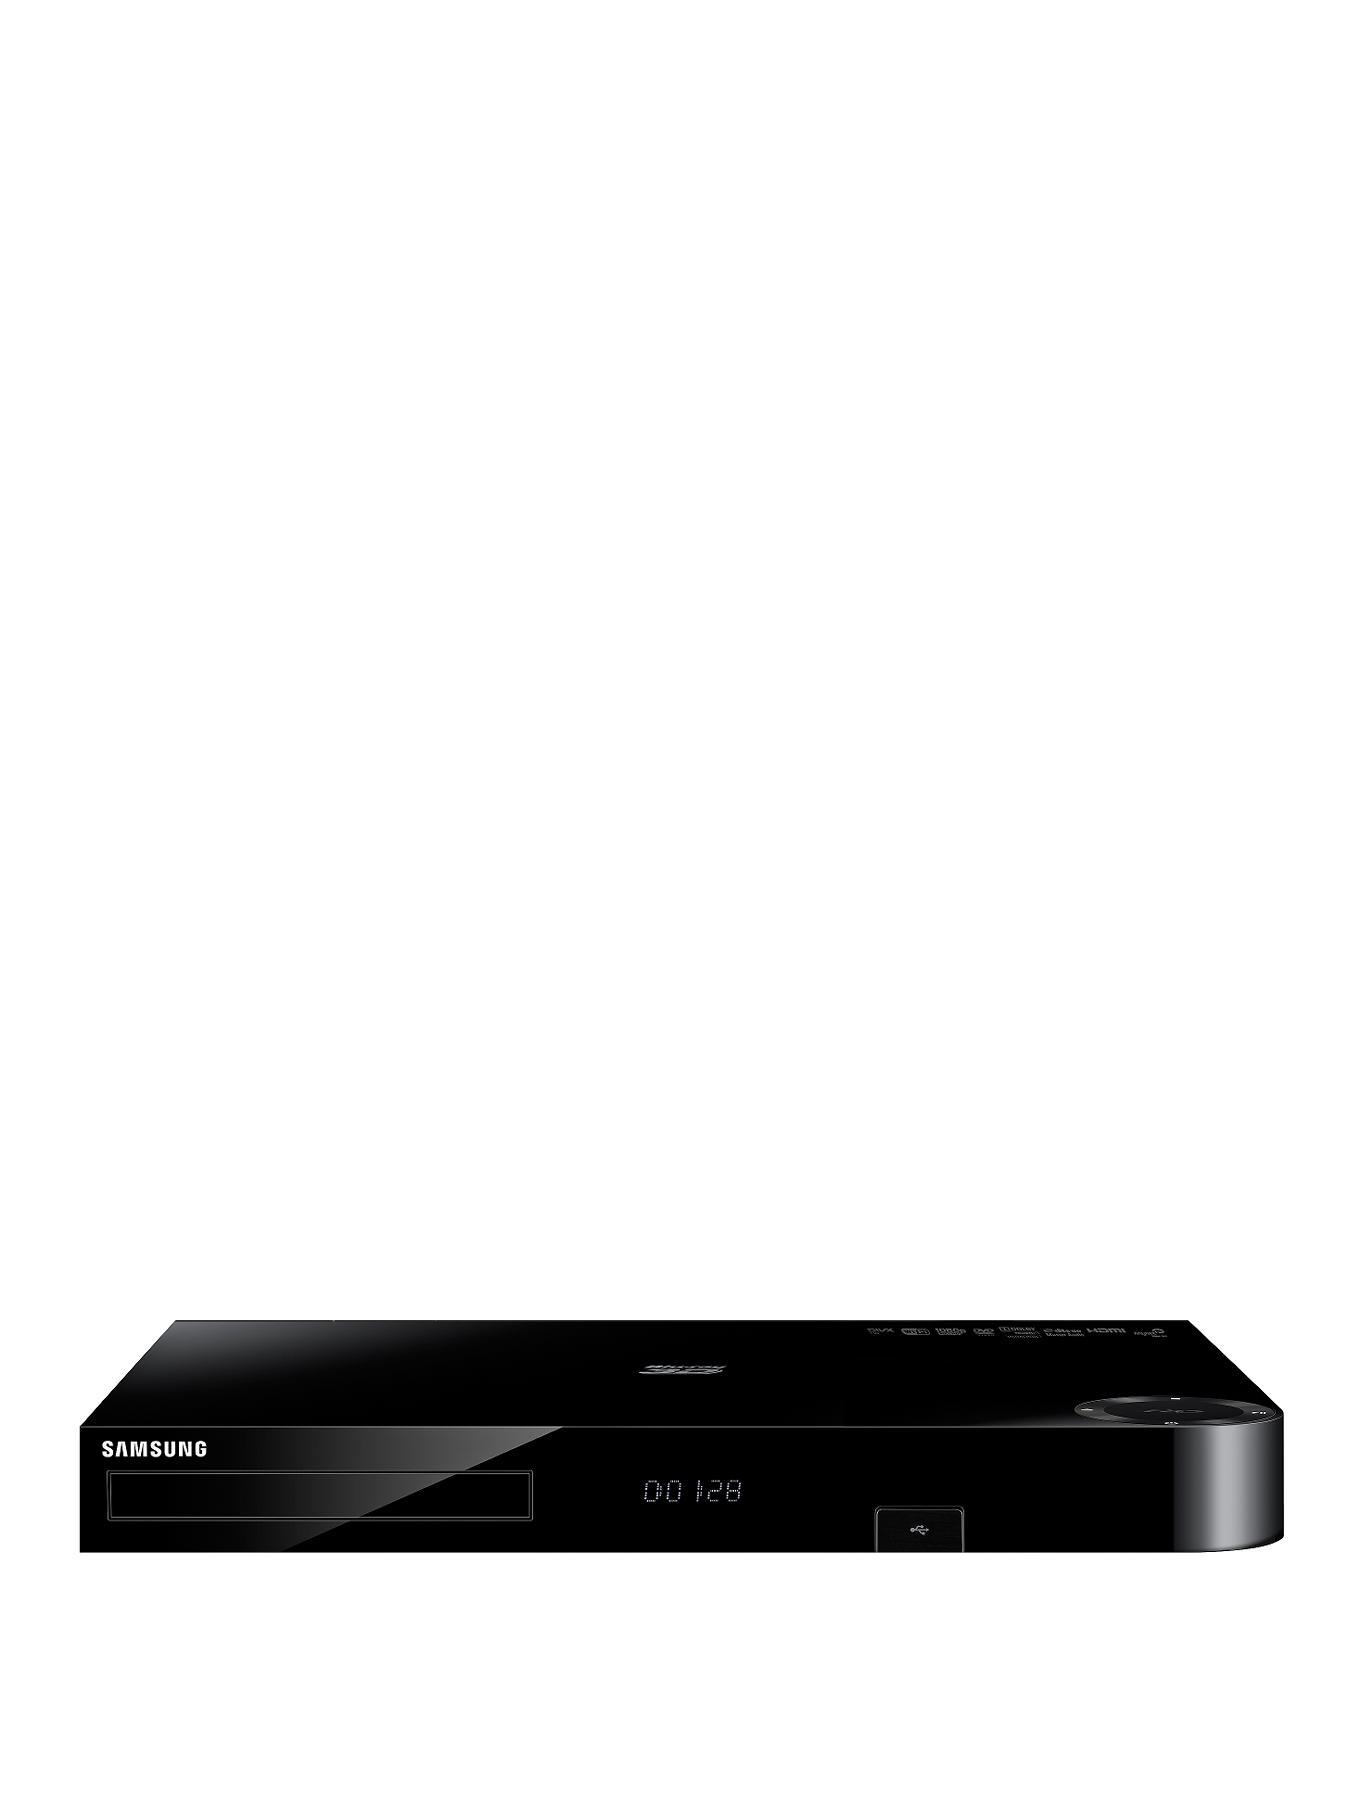 Samsung BD-H8500 500Gb Smart 3D Blu-Ray Recorder